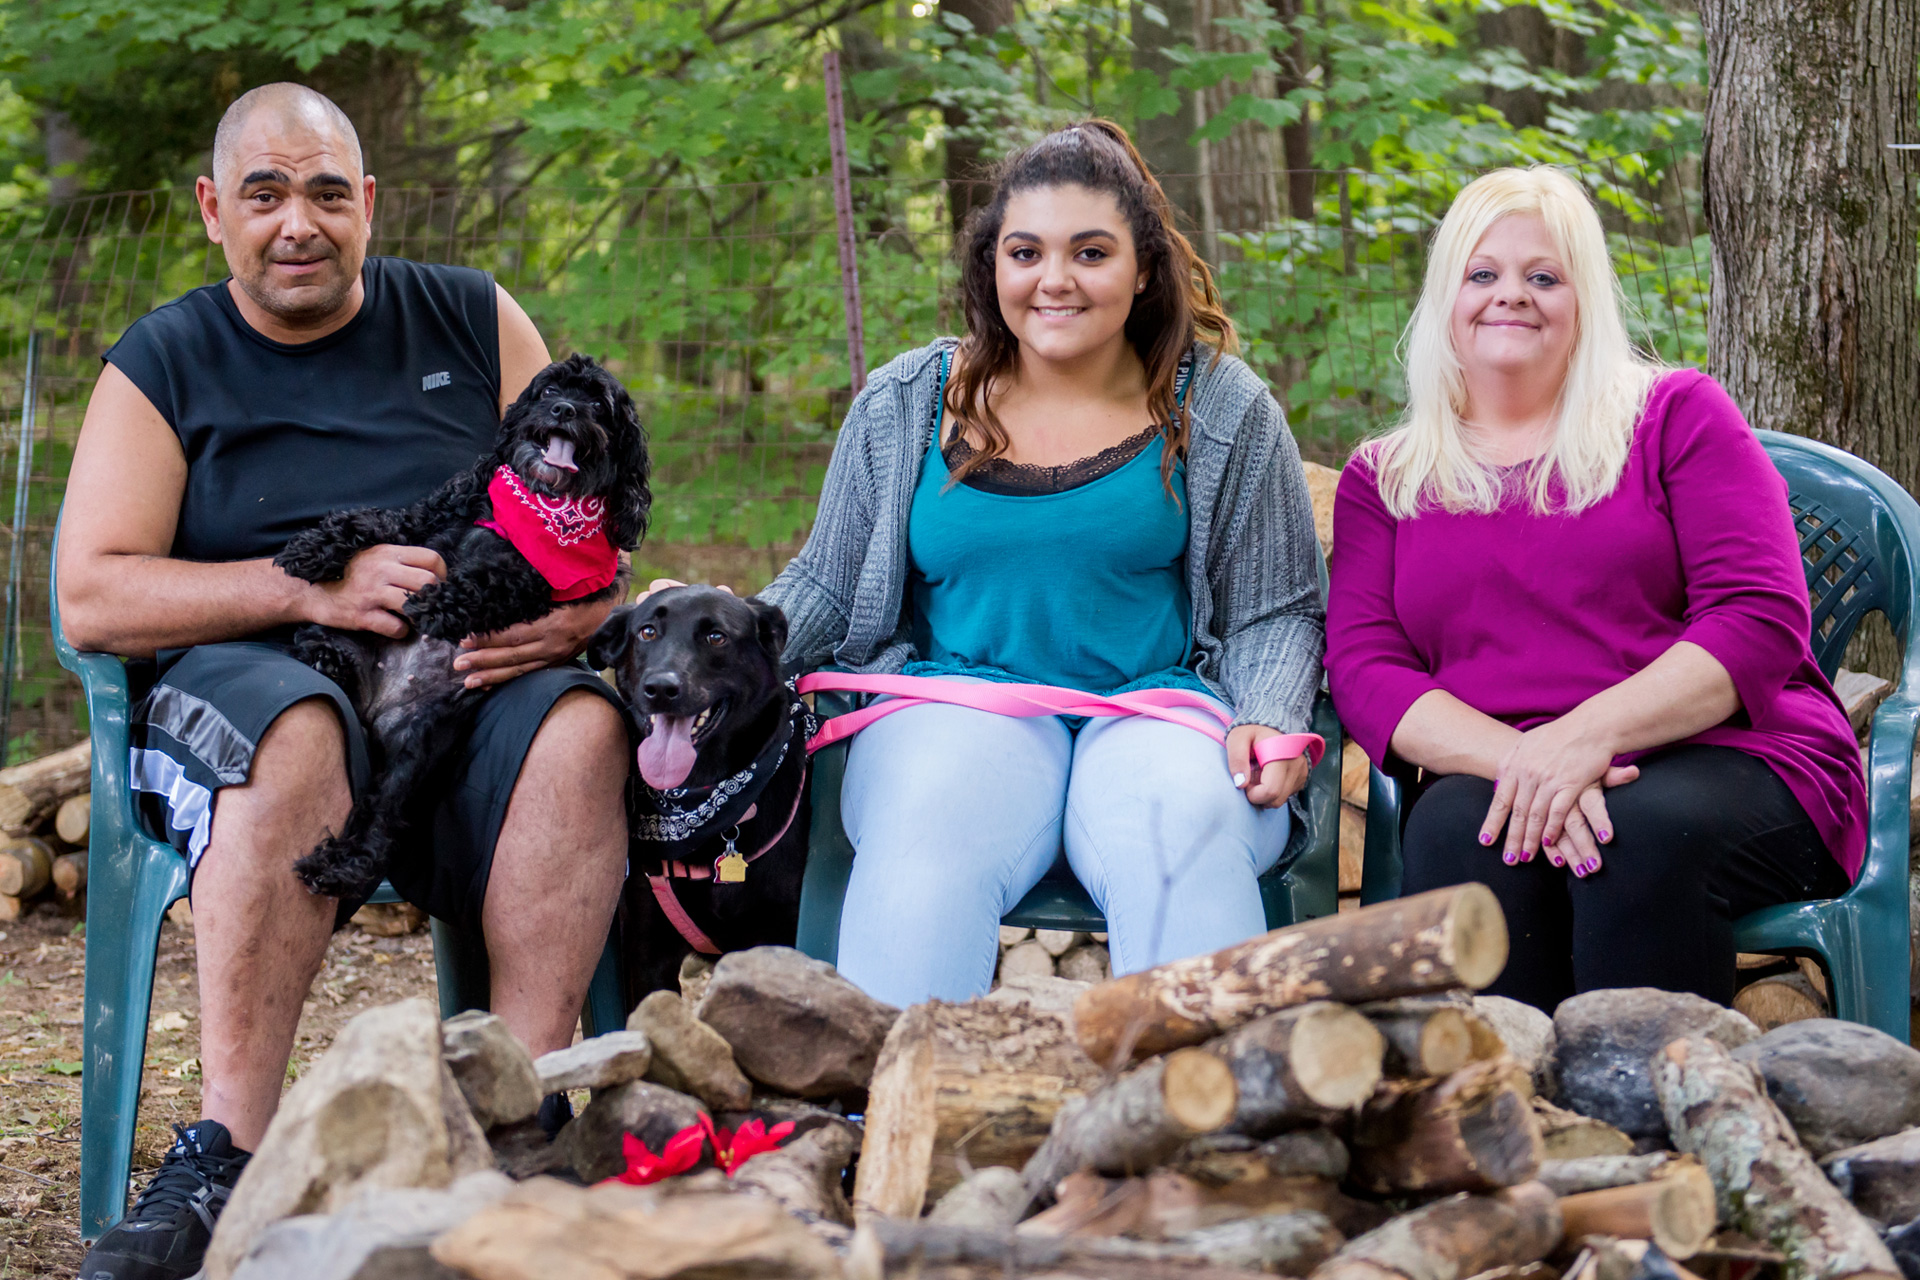 A dad, mom, daughter, and two dogs sit outdoors by the wood pile